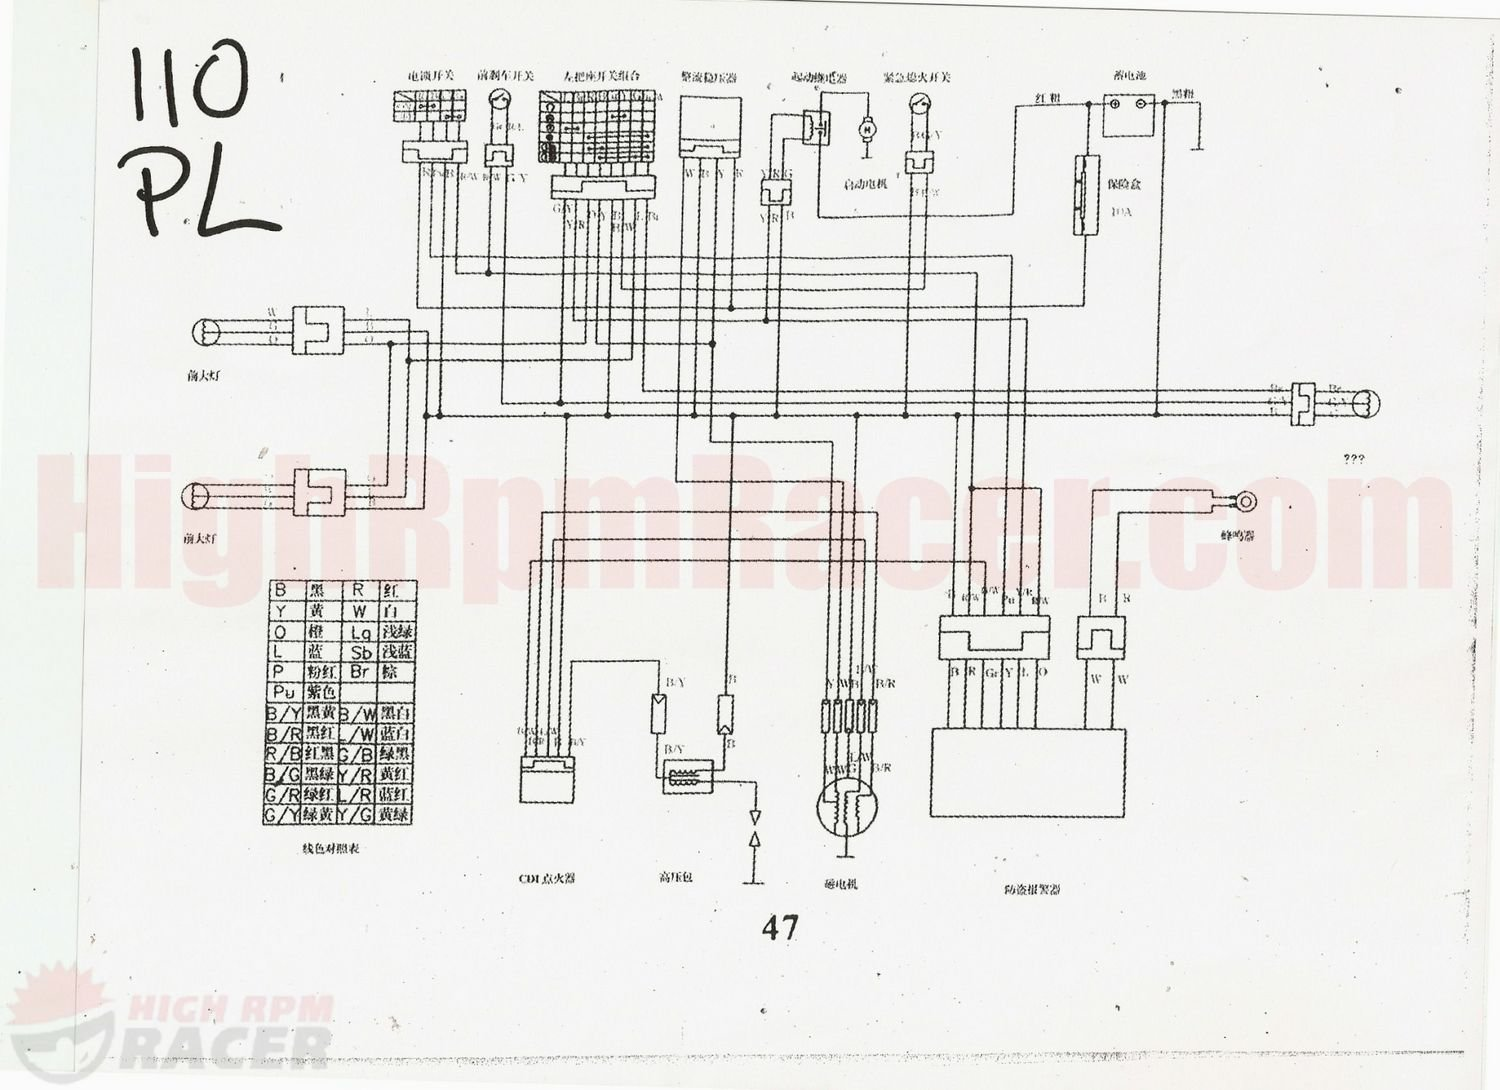 panther110pl_wd panther atv 110pl wiring diagram $0 00 loncin engine wiring diagrams for atv at honlapkeszites.co